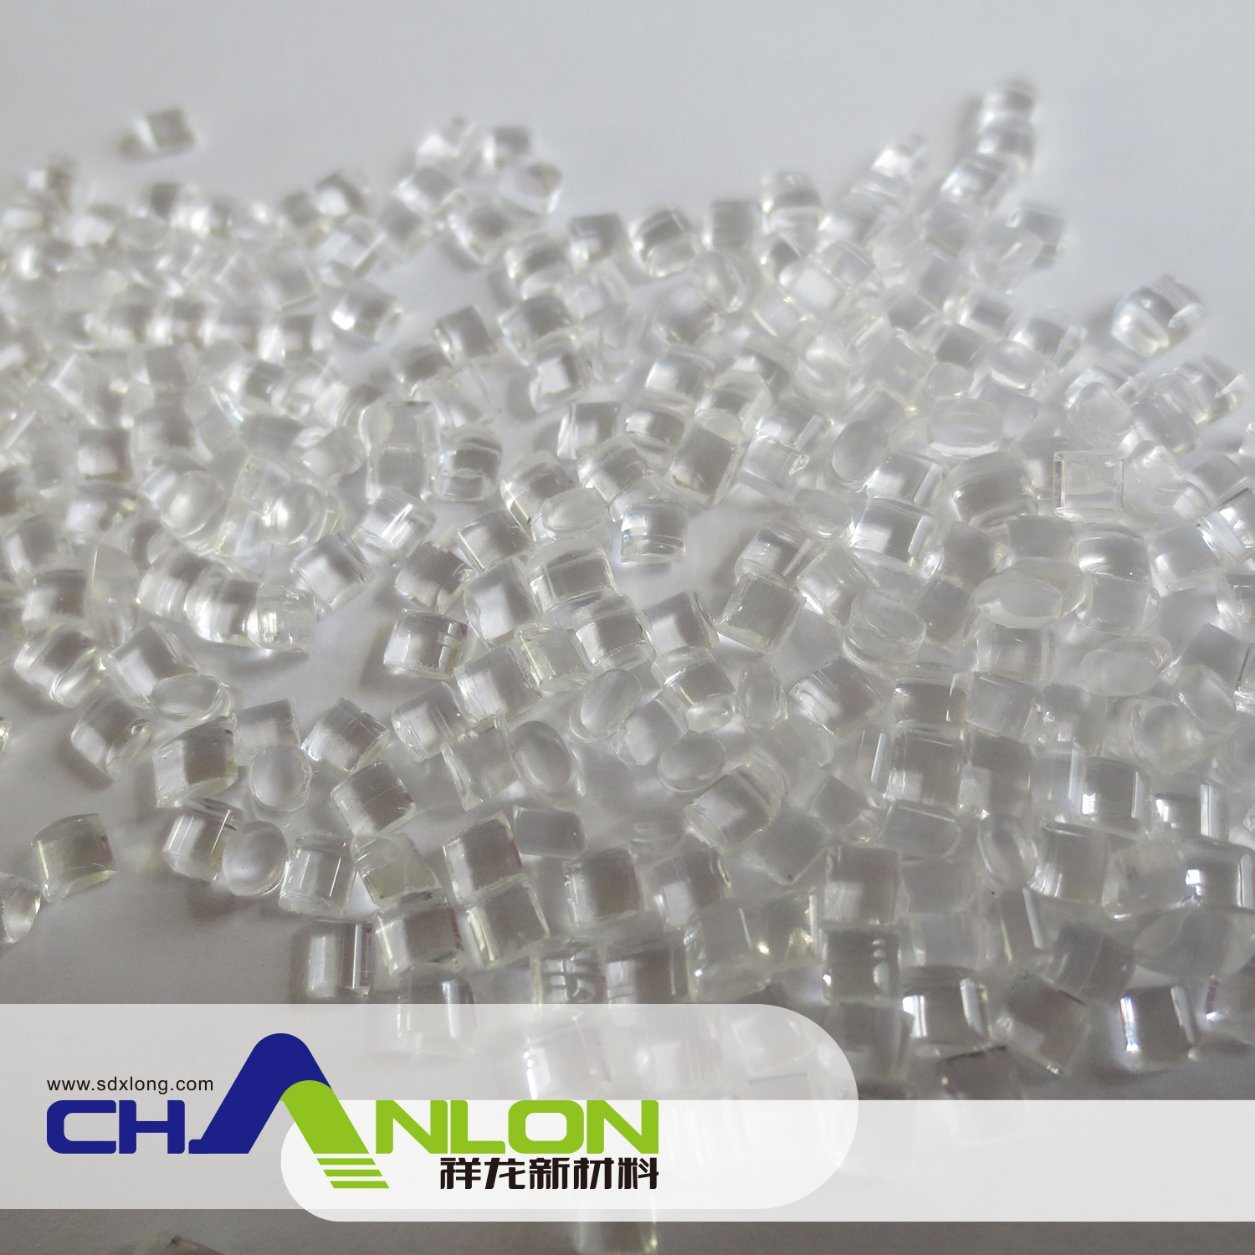 Best Amorphous Nylon, High Quality Nylon12, Amorphous Transparent Polymide pictures & photos